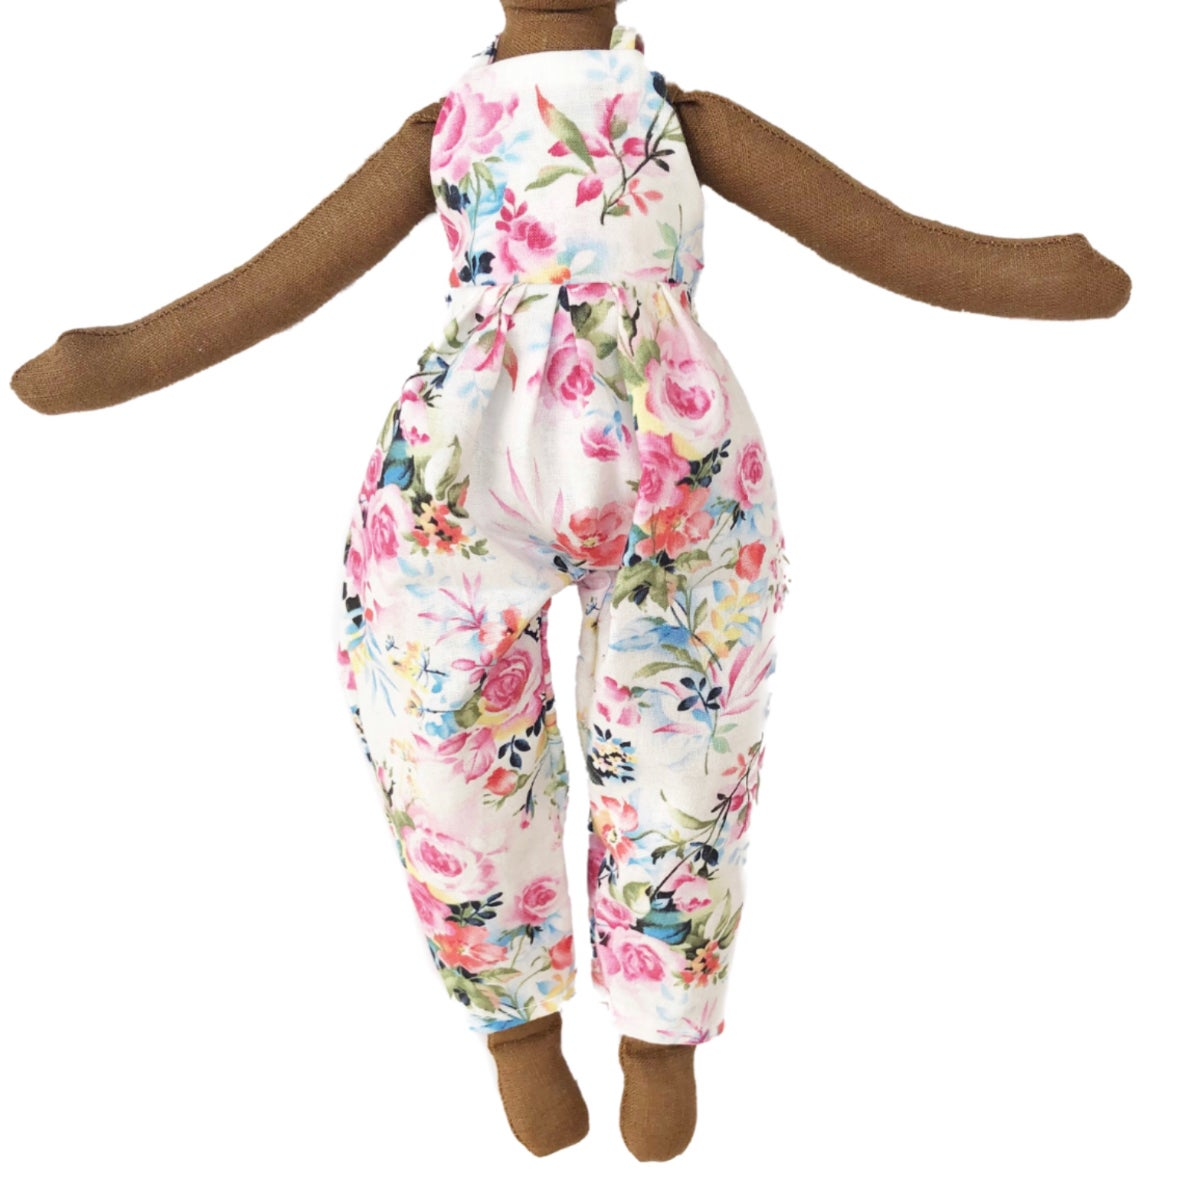 Pink Floral jumper - Doll Accessory (PLEASE NOTE: THIS ORDER WILL SHIP ON OR BEFORE JULY 1ST)